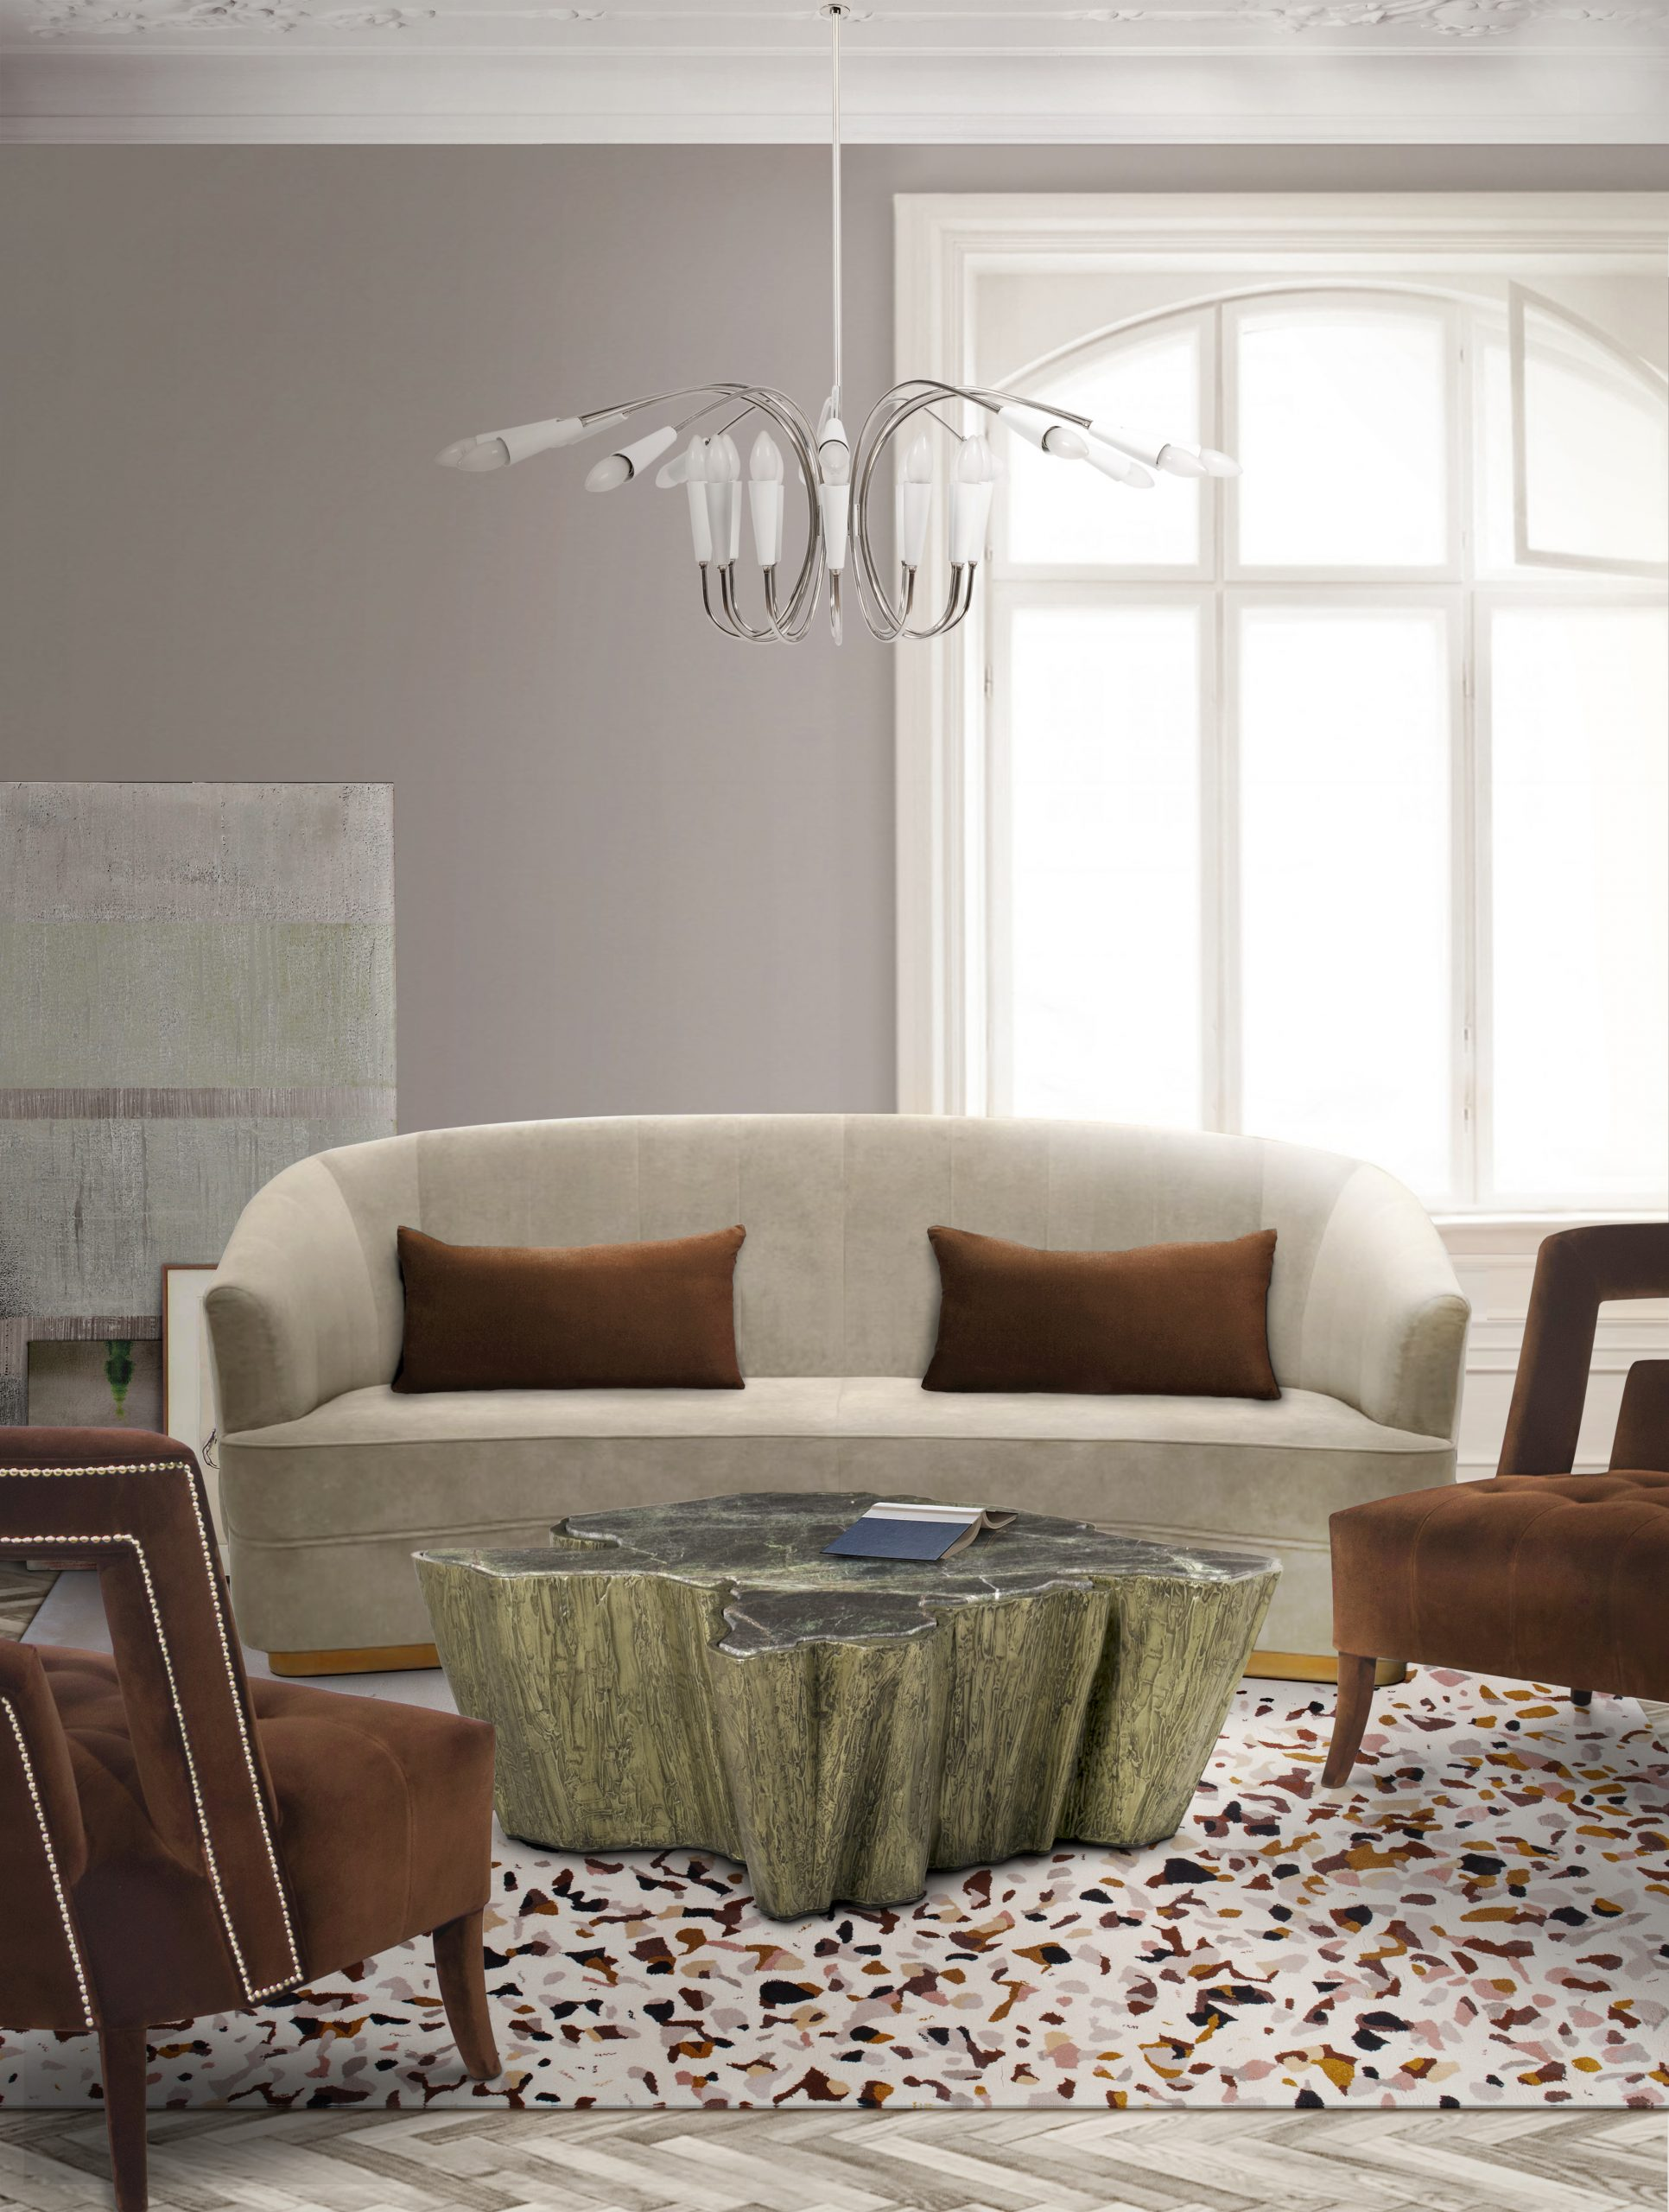 Earth tones: Renew Your Home With These Earth Tone Modern Chairs earth tones Earth tones: Renew Your Home With These Earth Tone Modern Chairs Earth tones Renew Your Home With These Earth Tone Modern Chairs 5 scaled